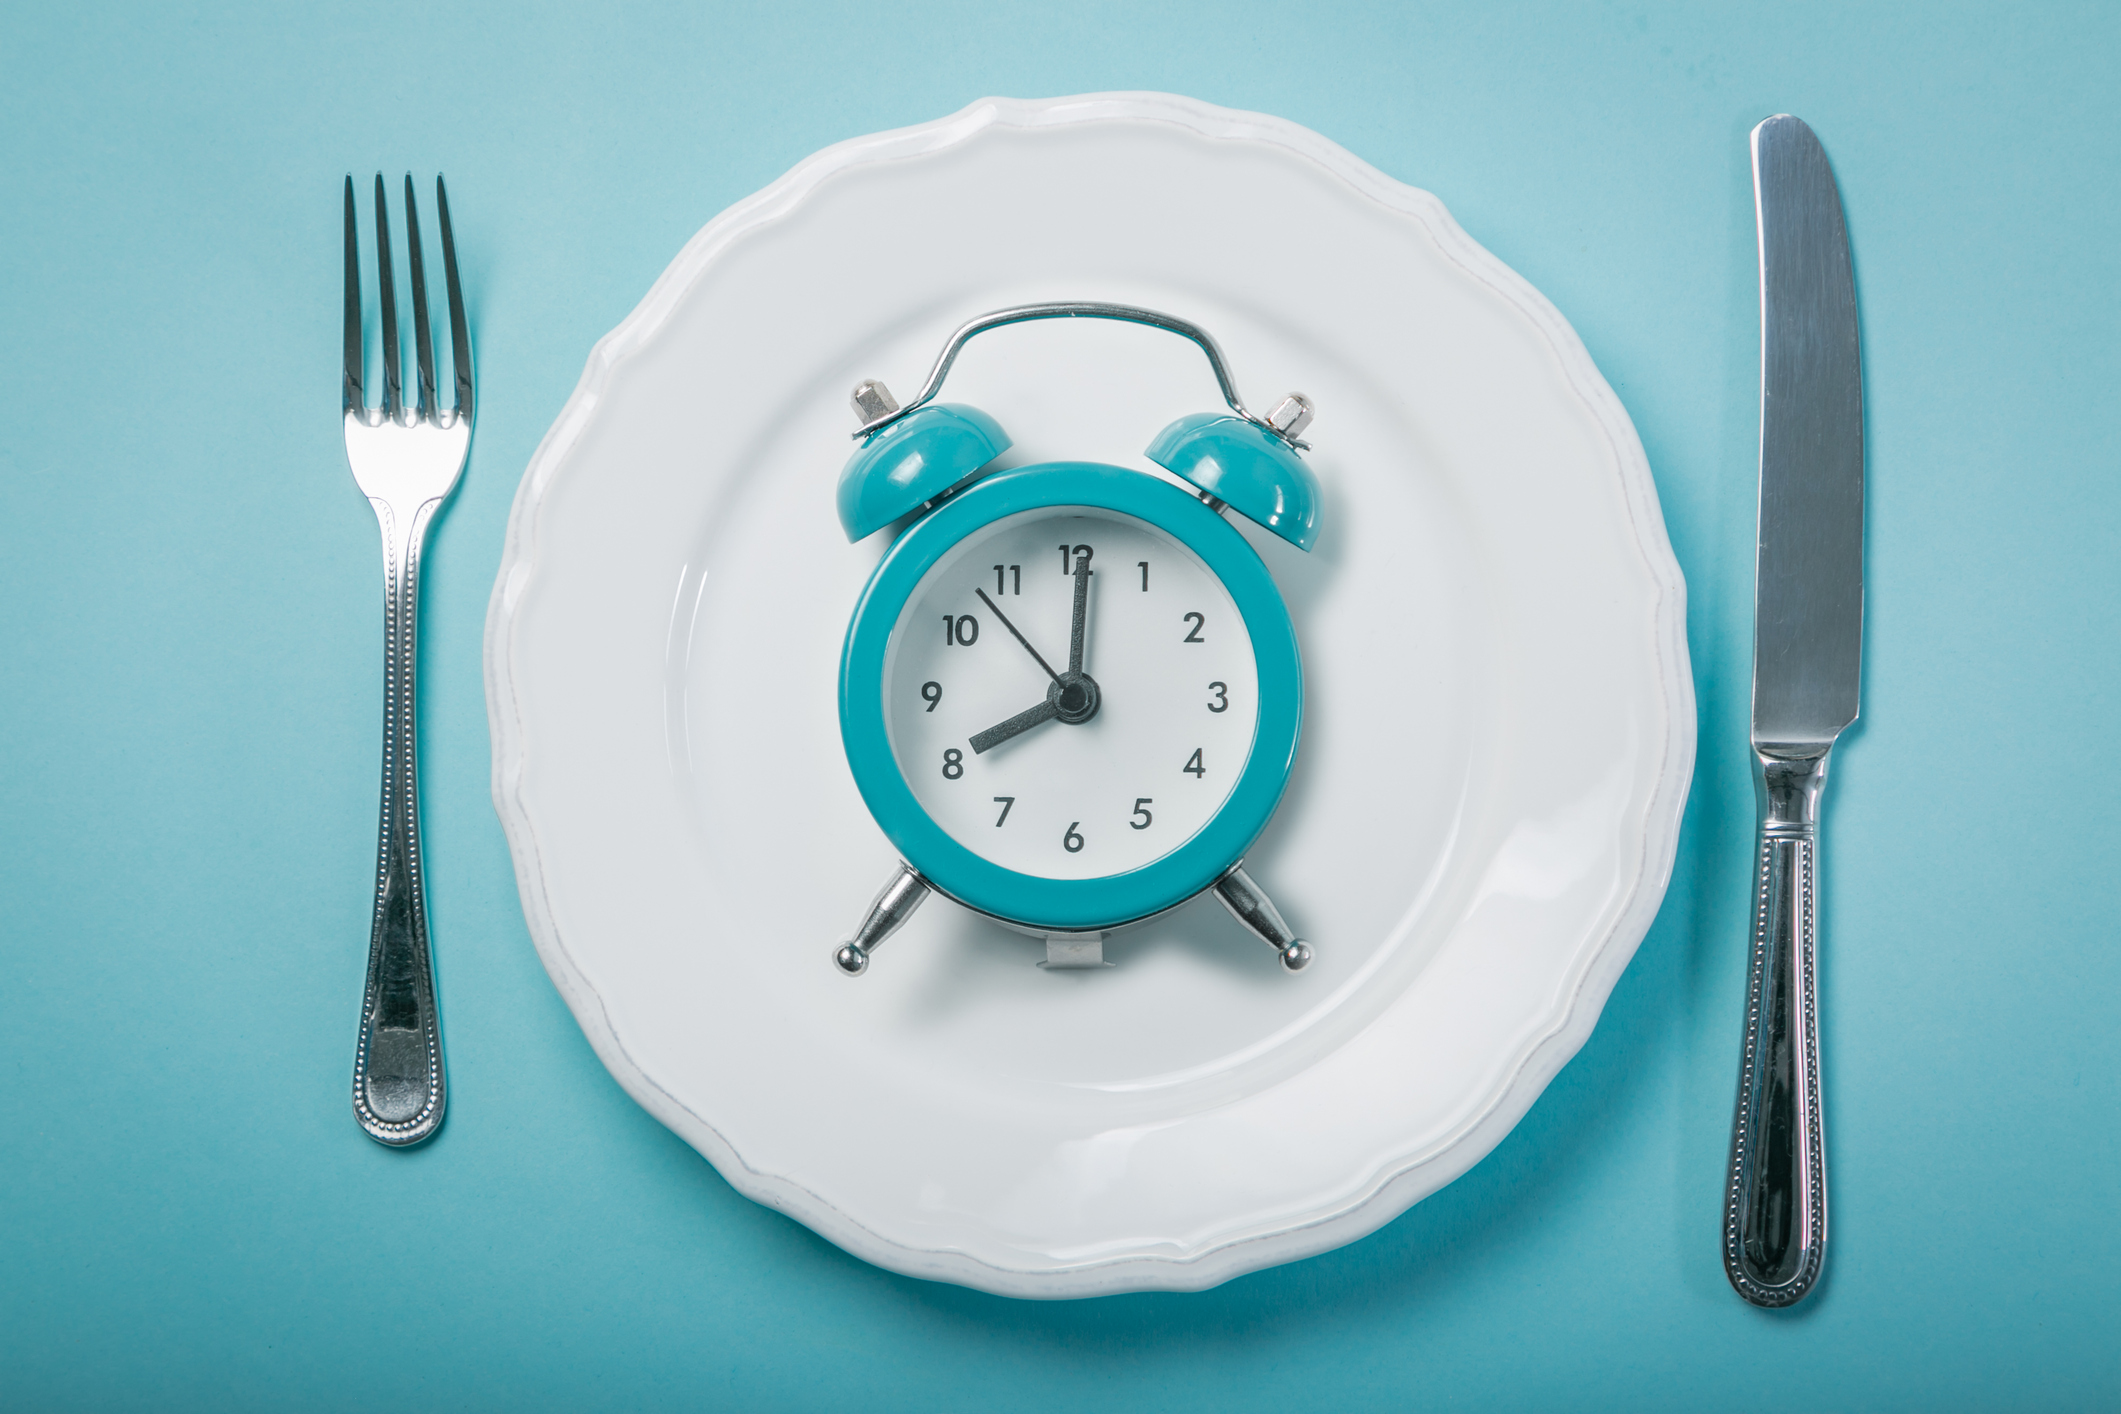 What's The Right Way To Do Intermittent Fasting?